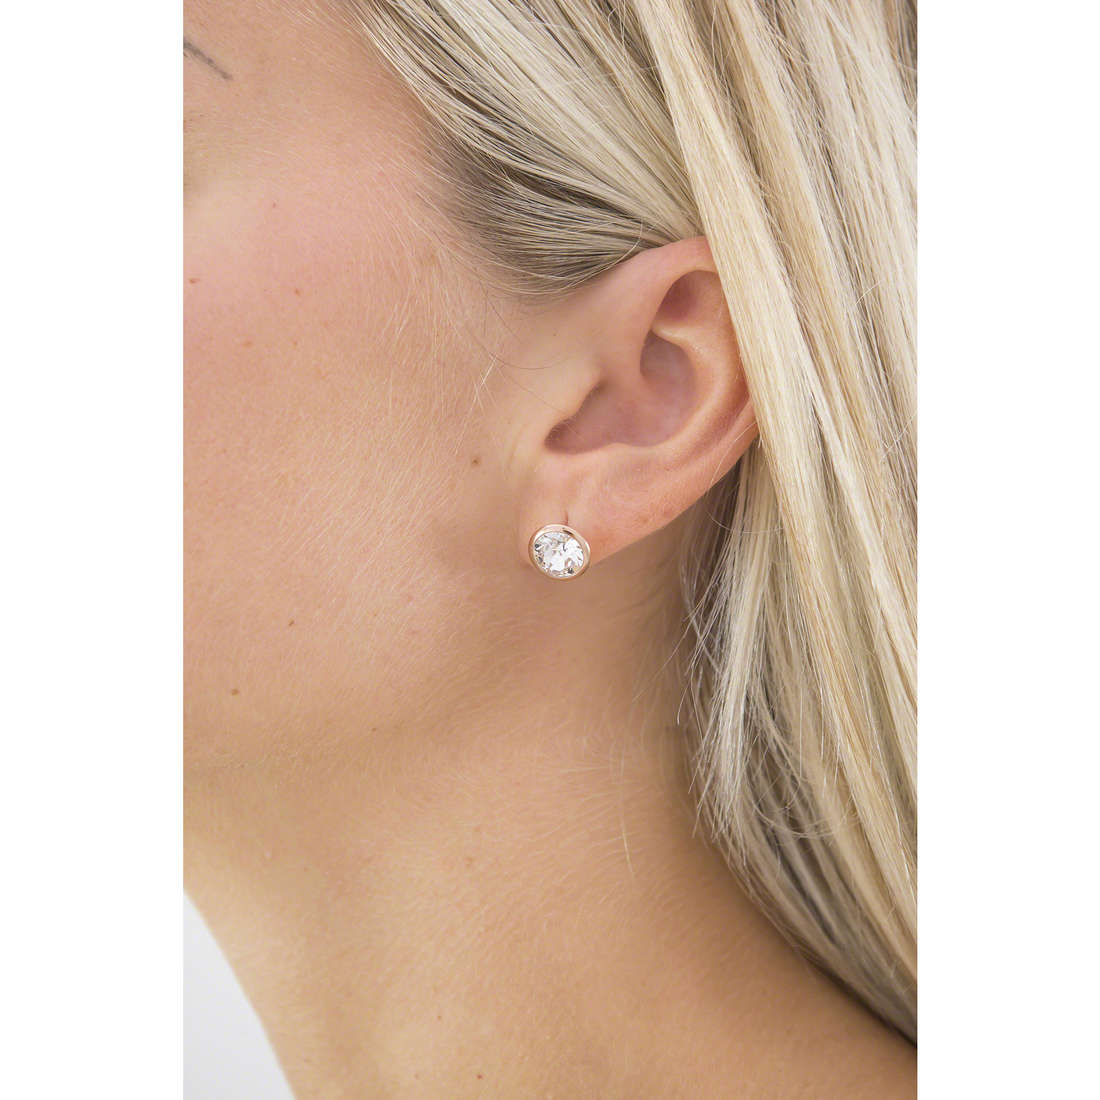 Brosway earrings E-Tring woman BRT33 indosso